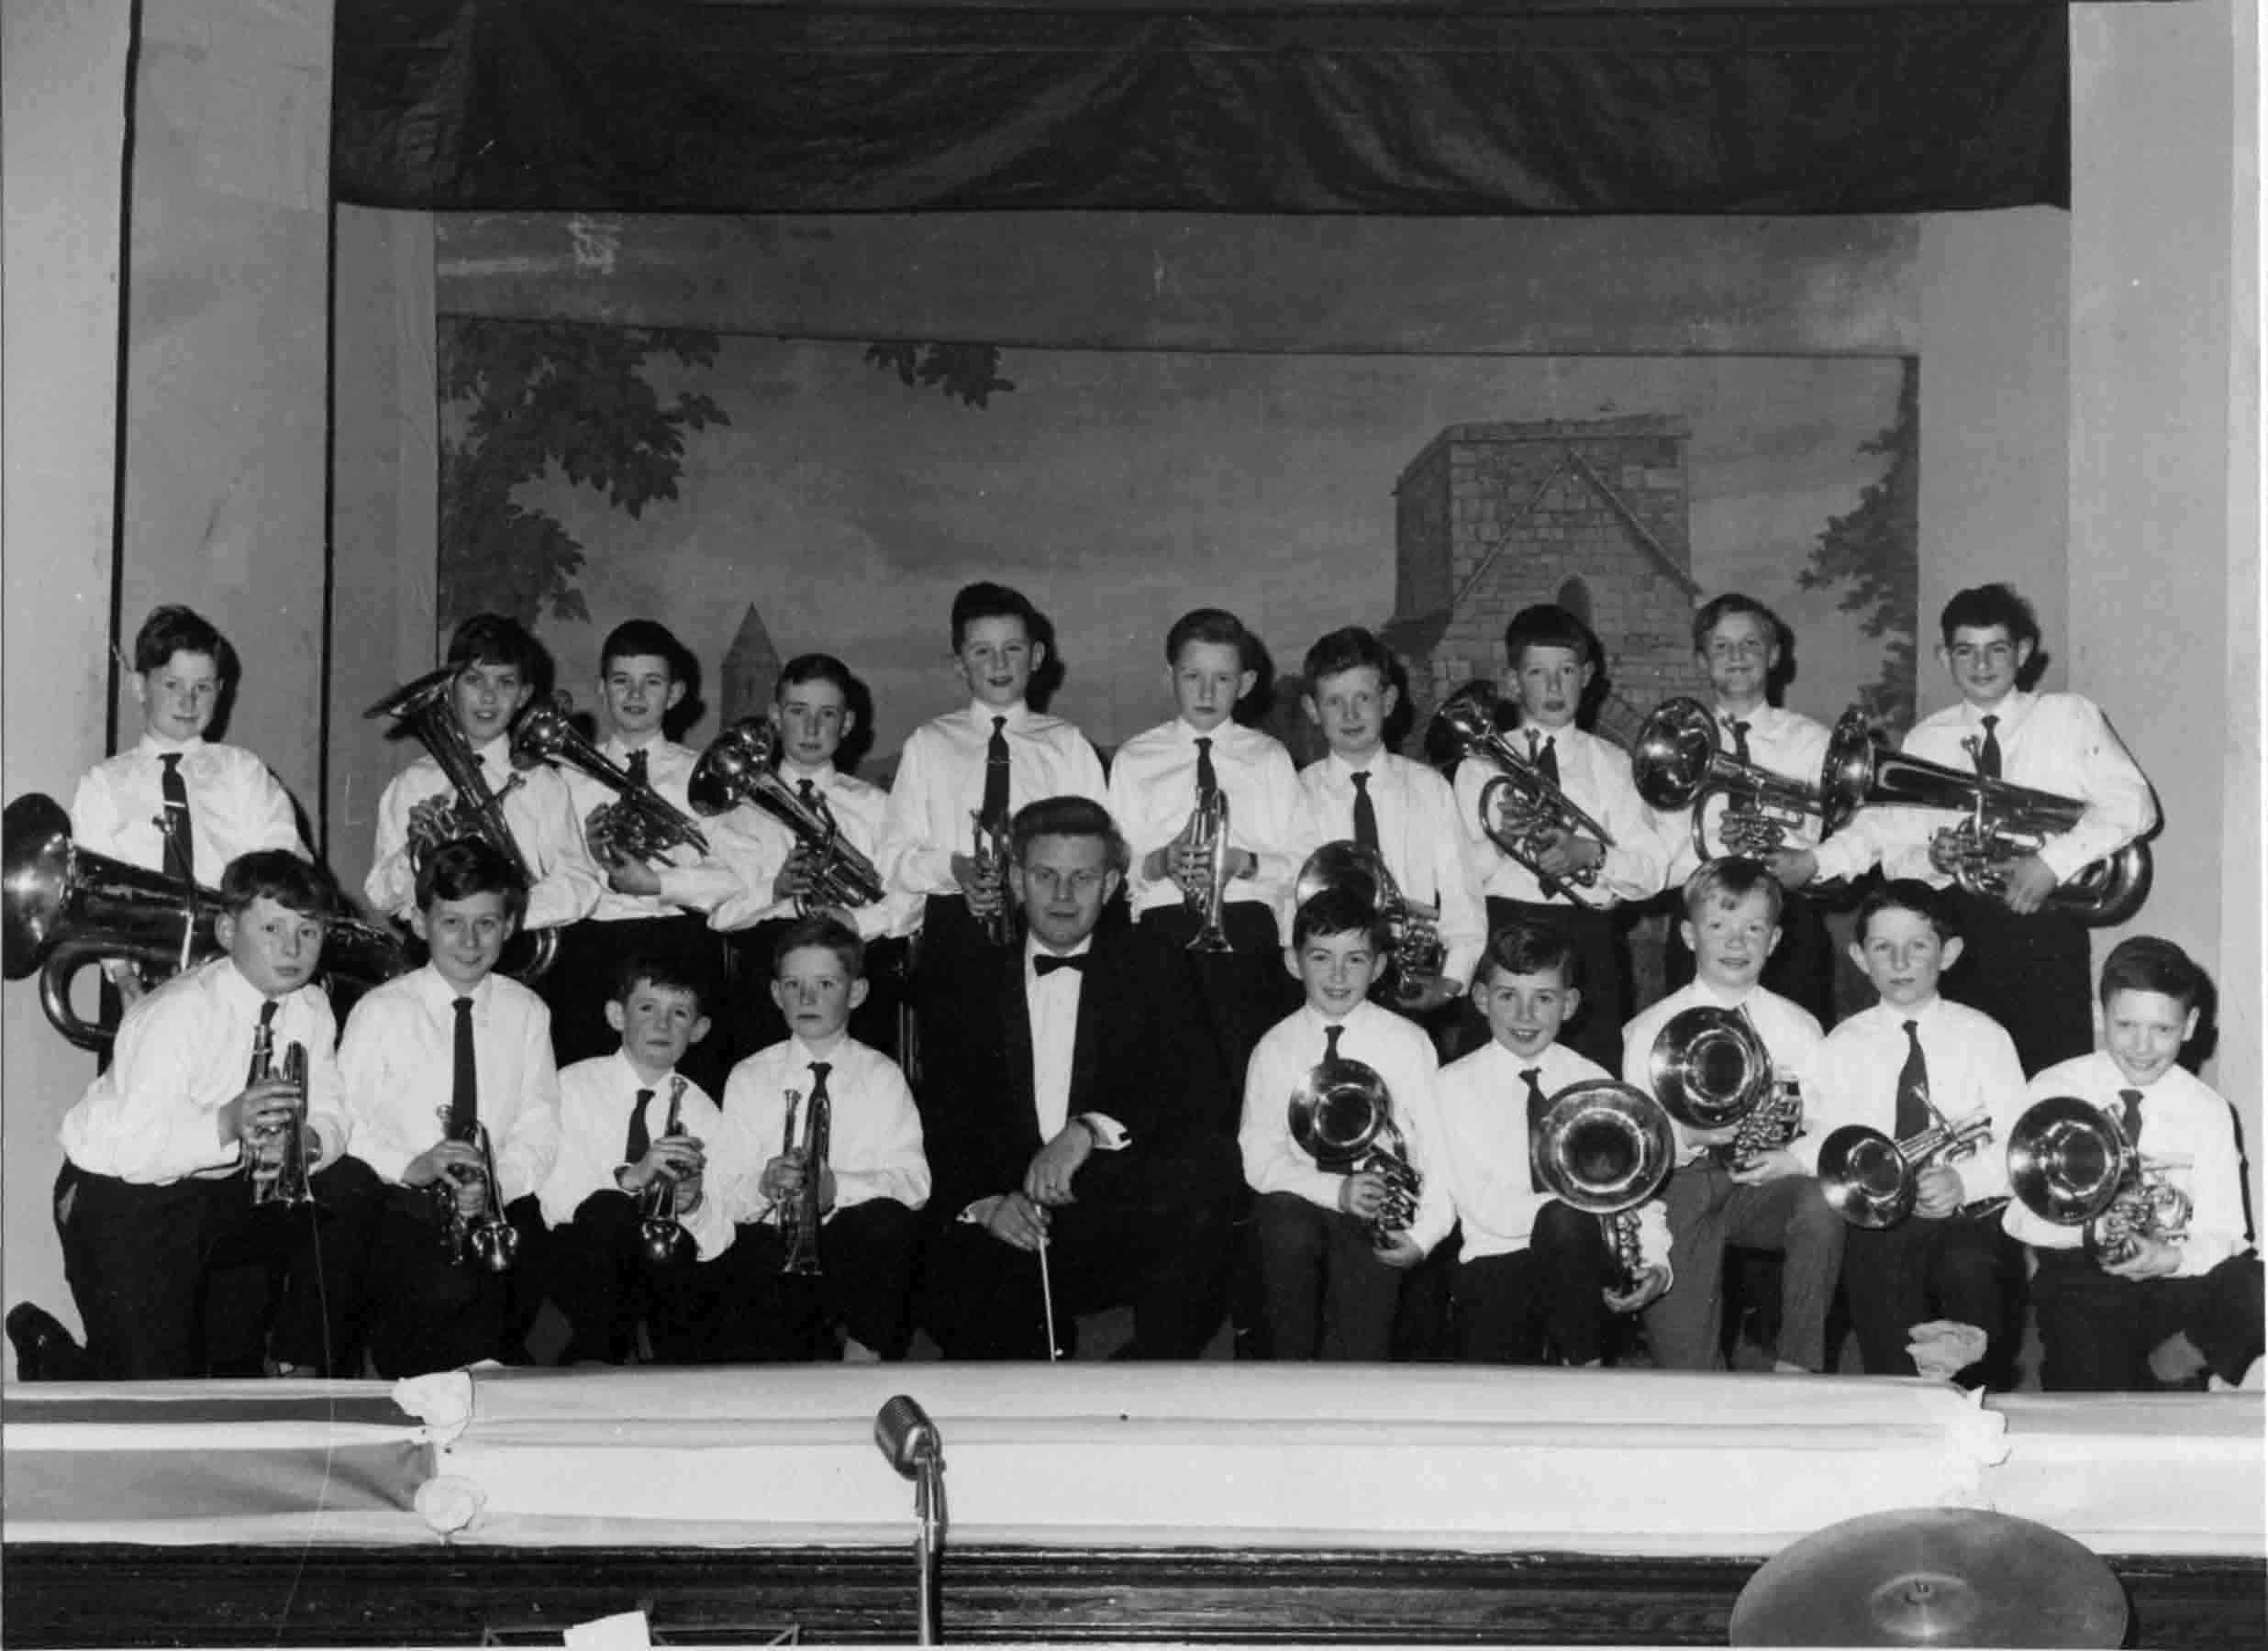 The debut performance of the Carndonagh Boys' Brass Band, the Colgan Hall, St. Patrick's Night Concert, 1967